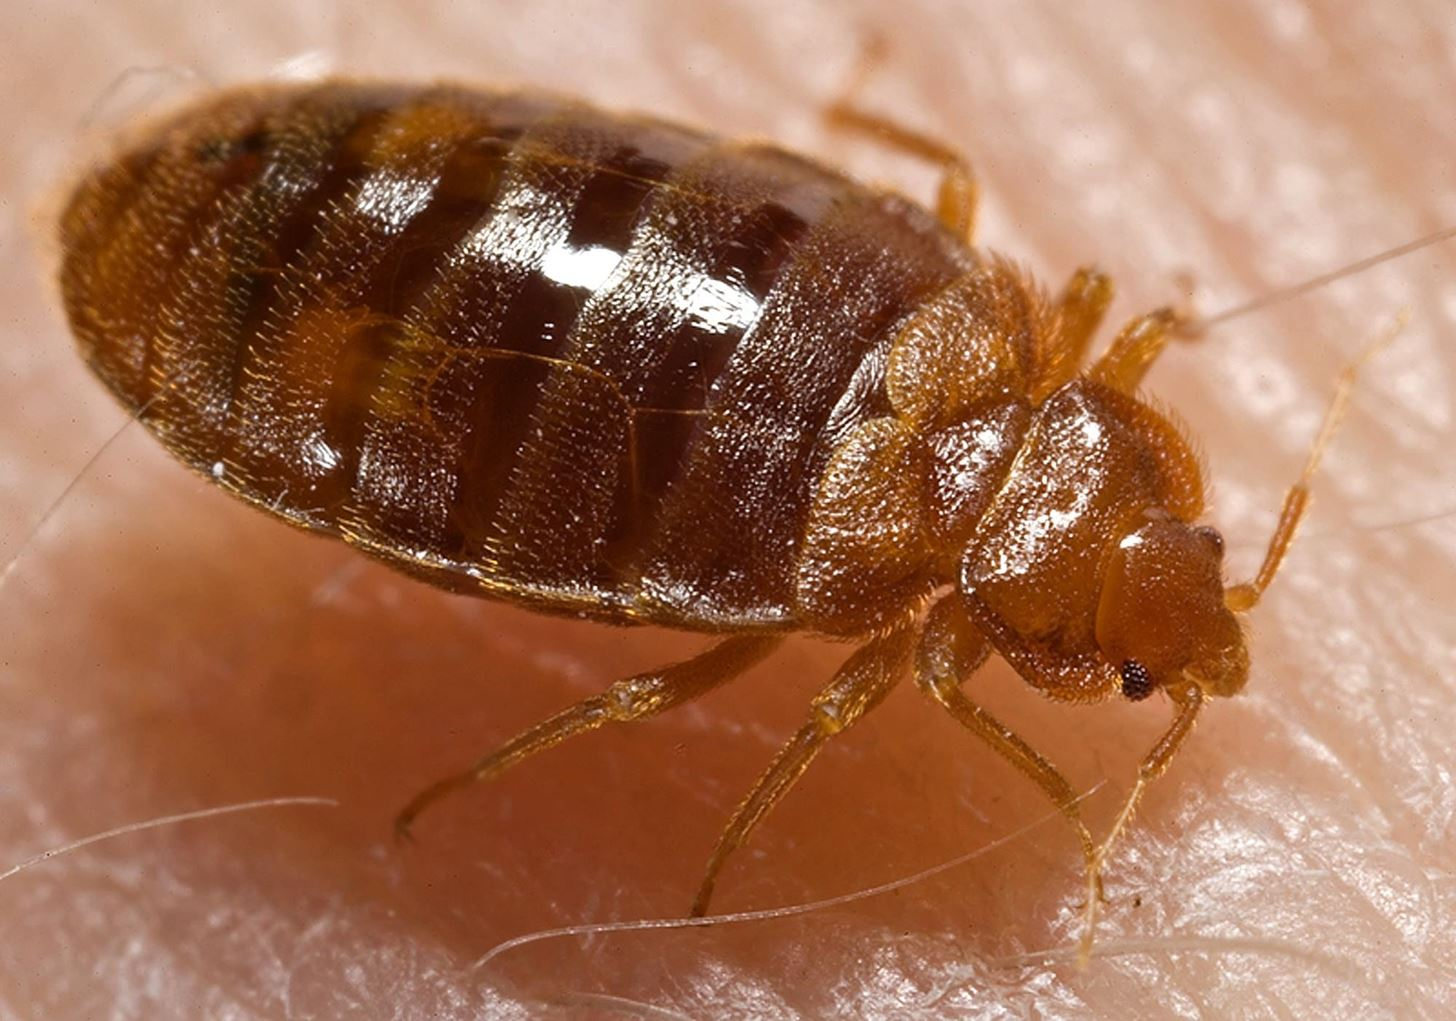 How to Get Rid of Bed Bugs Using Less Pesticide